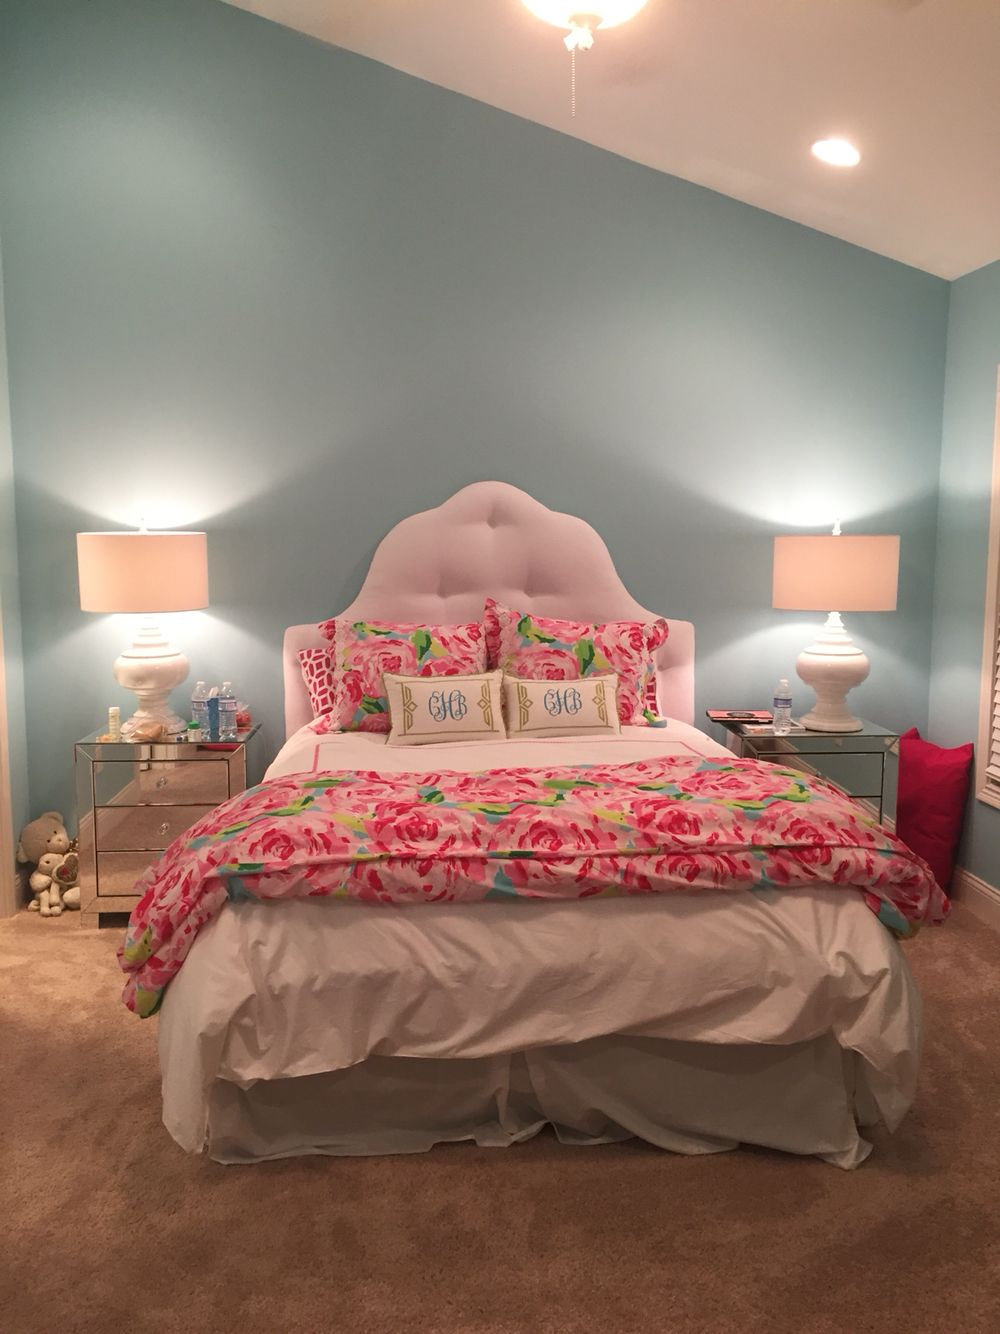 Himalayan Salt Lamp Bed Bath And Beyond Glamorous Lilly Pulitzer And Pottery Barn Teen Comforter With Monogrammed Decorating Design